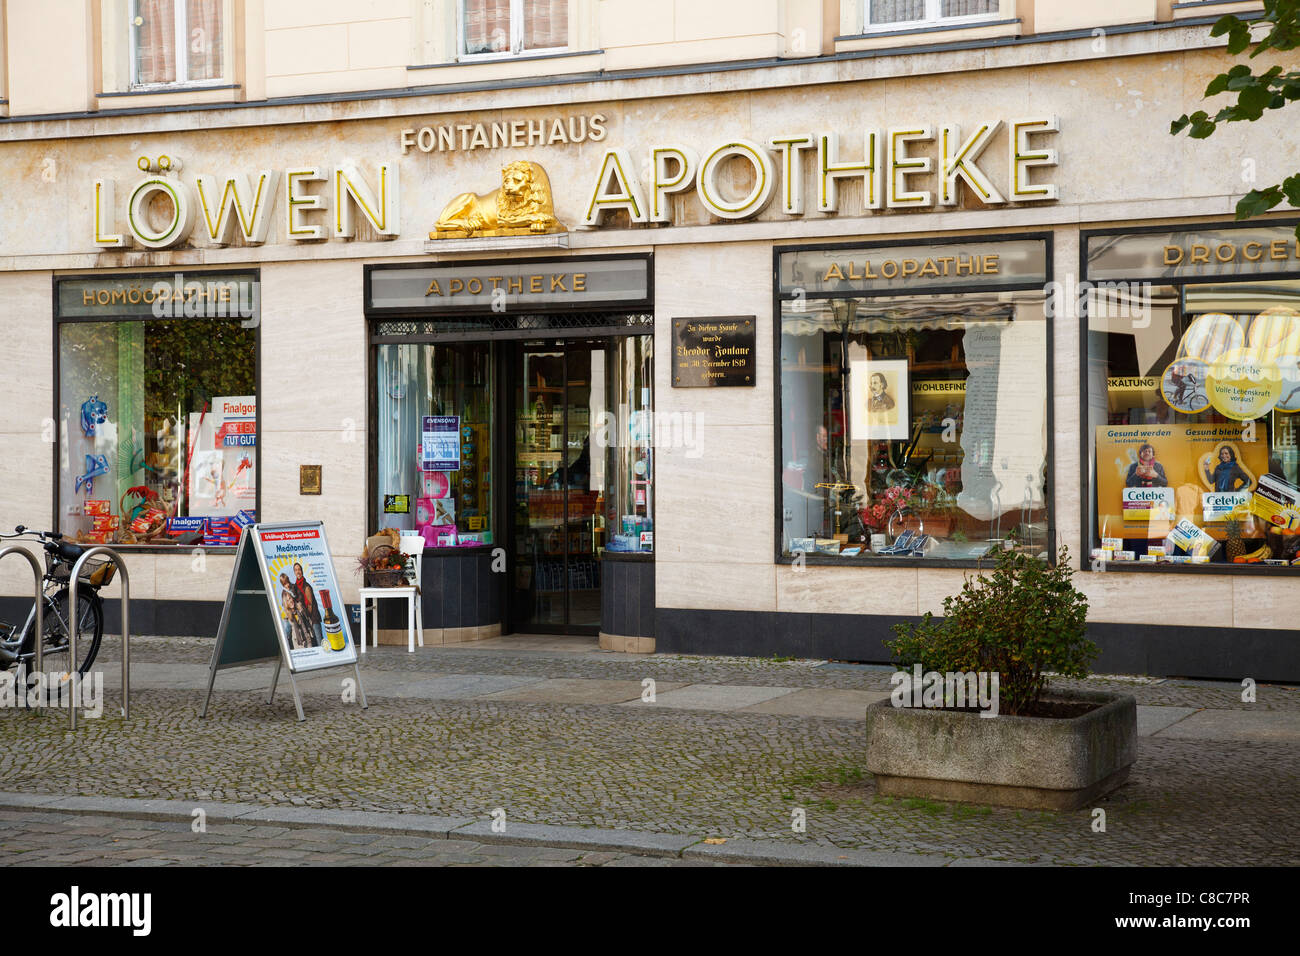 Löwen Apotheke birth place of writer Theodor Fontane, Neuruppin, Brandenburg, Germany Stock Photo